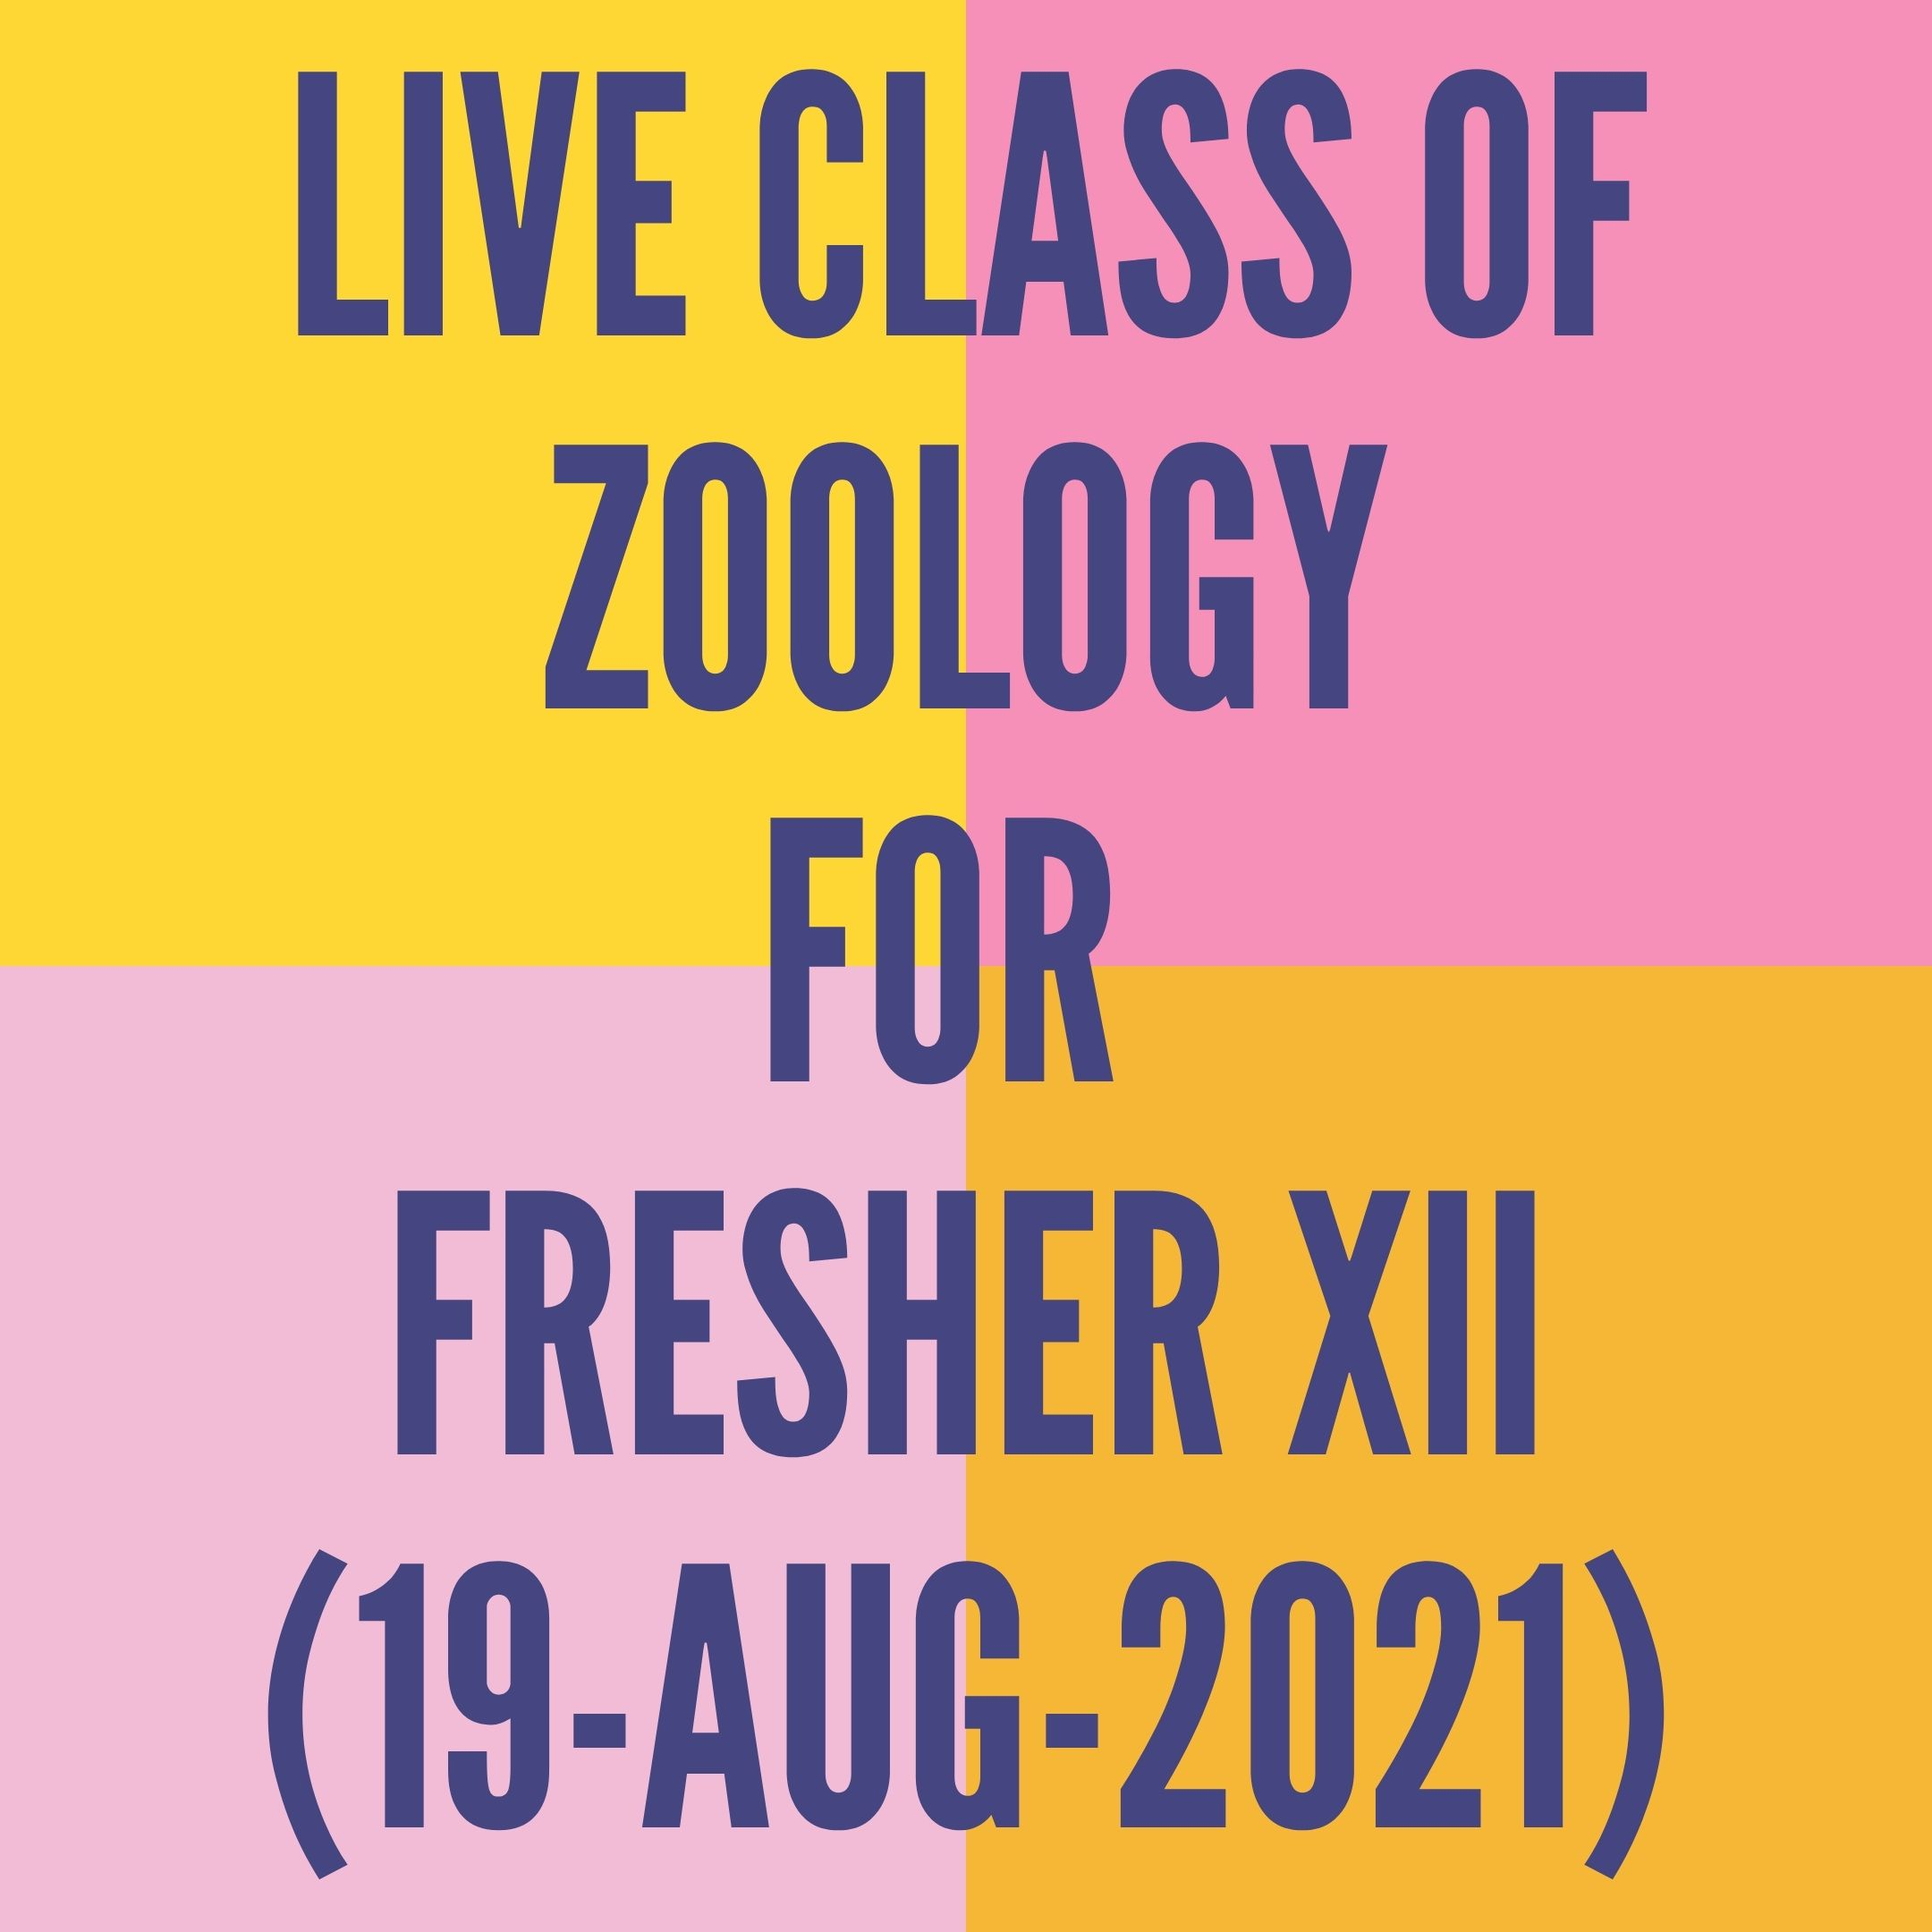 LIVE CLASS OF ZOOLOGY FOR FRESHER XII (19-AUG-2021) REPRODUCTIVE HEALTH